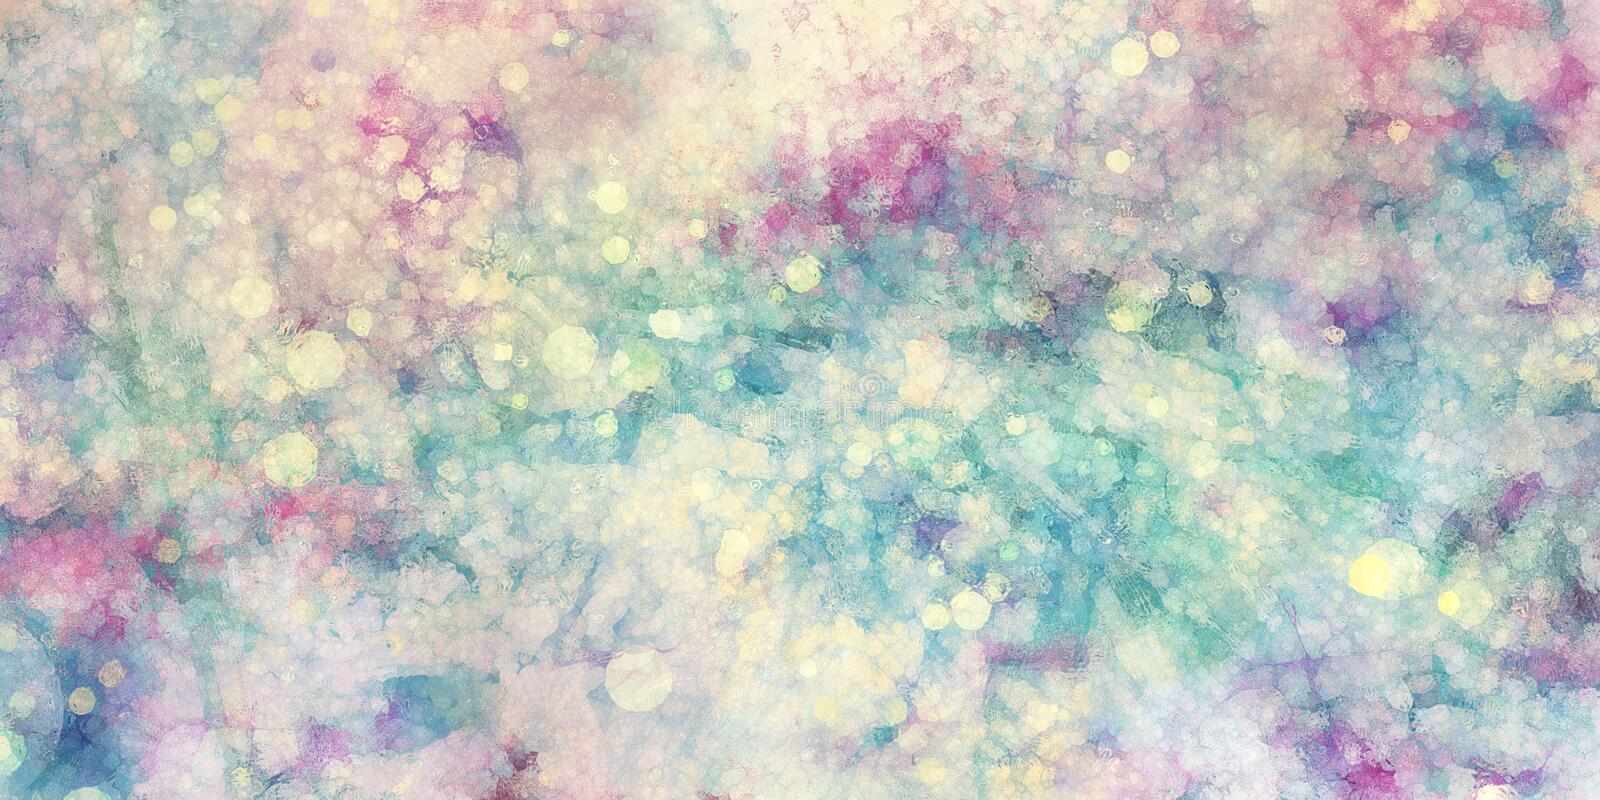 Pink purple blue green and white background with glass texture and bokeh lights blurred in soft colors royalty free illustration